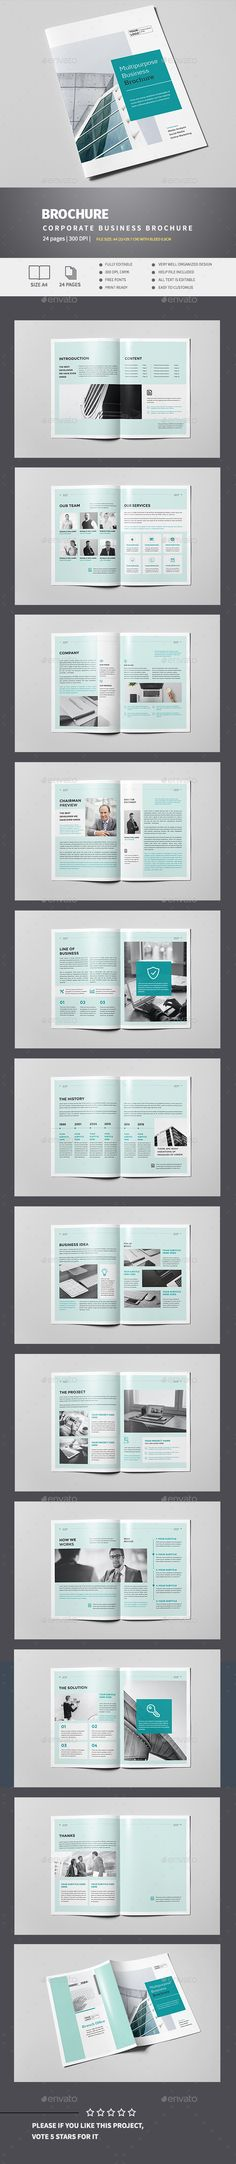 Kreatype Business Proposal v02 Business proposal template - project proposal word template